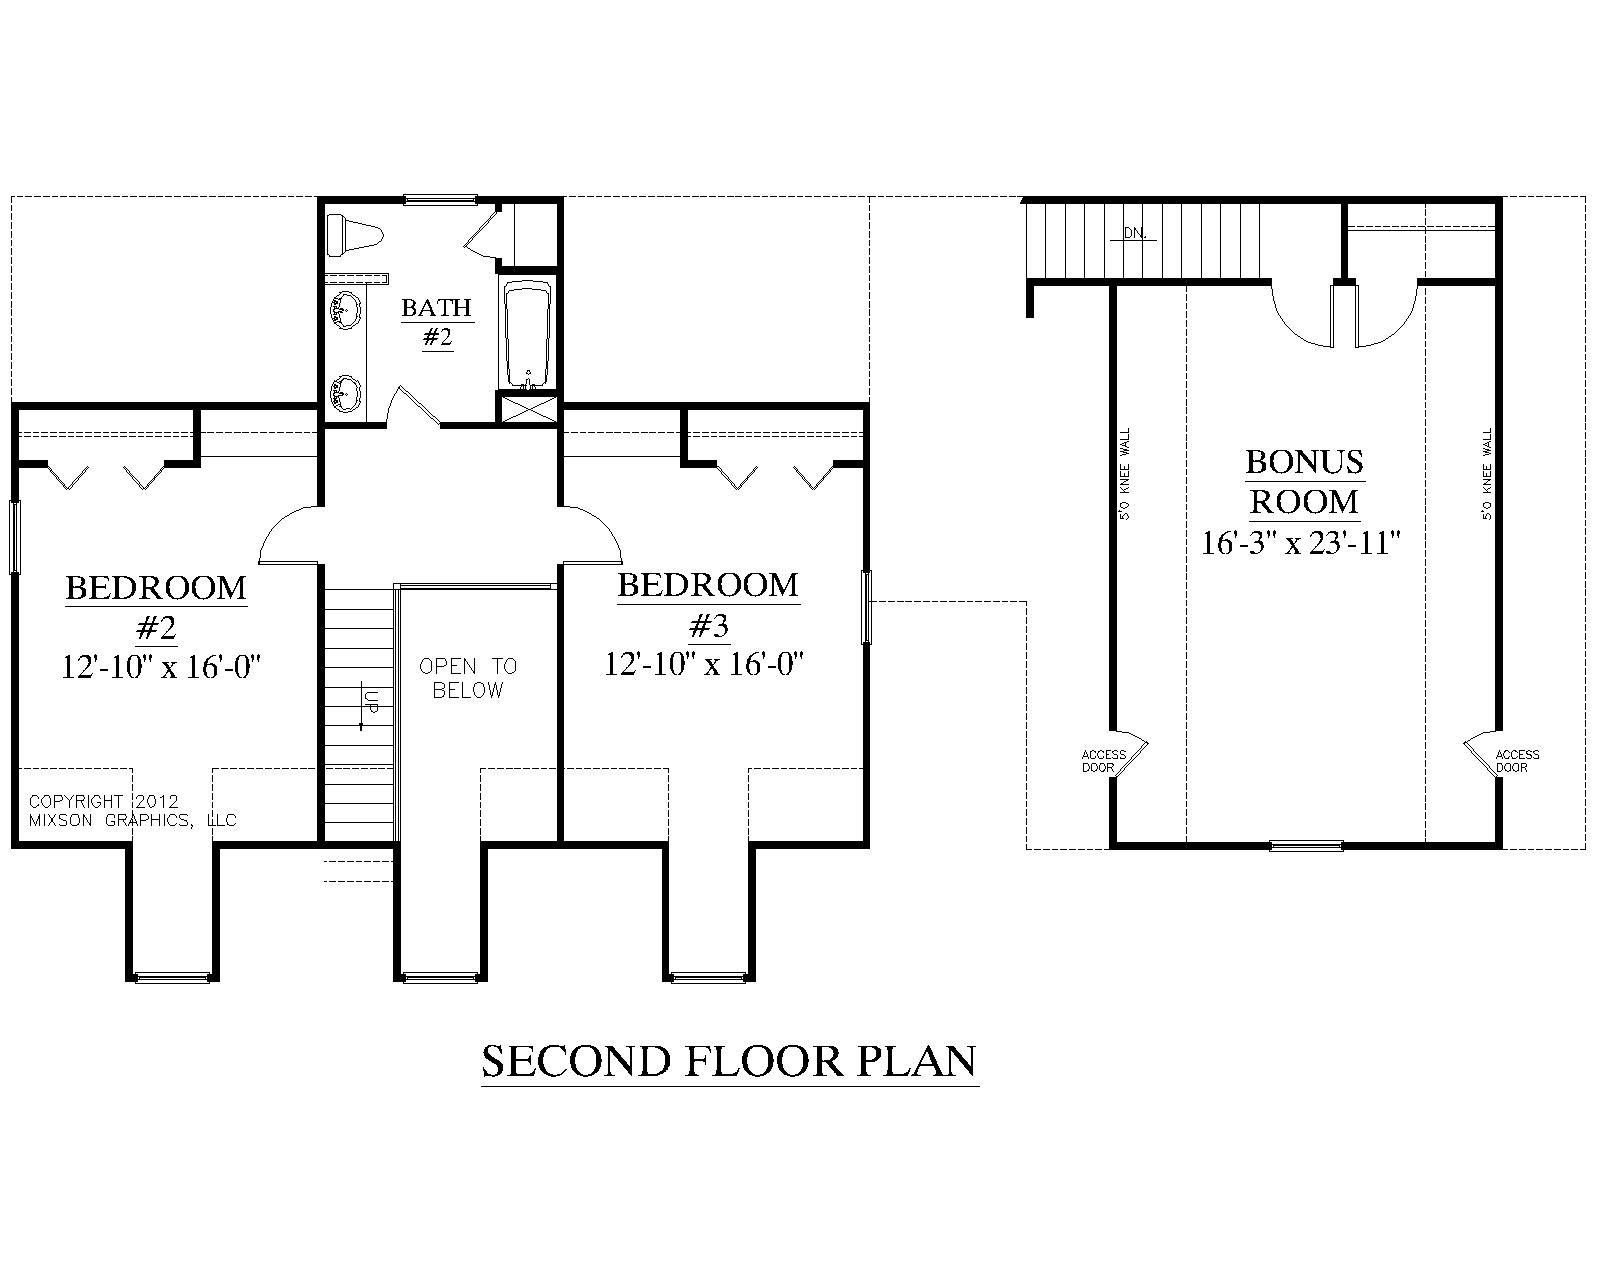 House plan 2091 b mayfield b second floor plan for 1 1 2 story floor plans